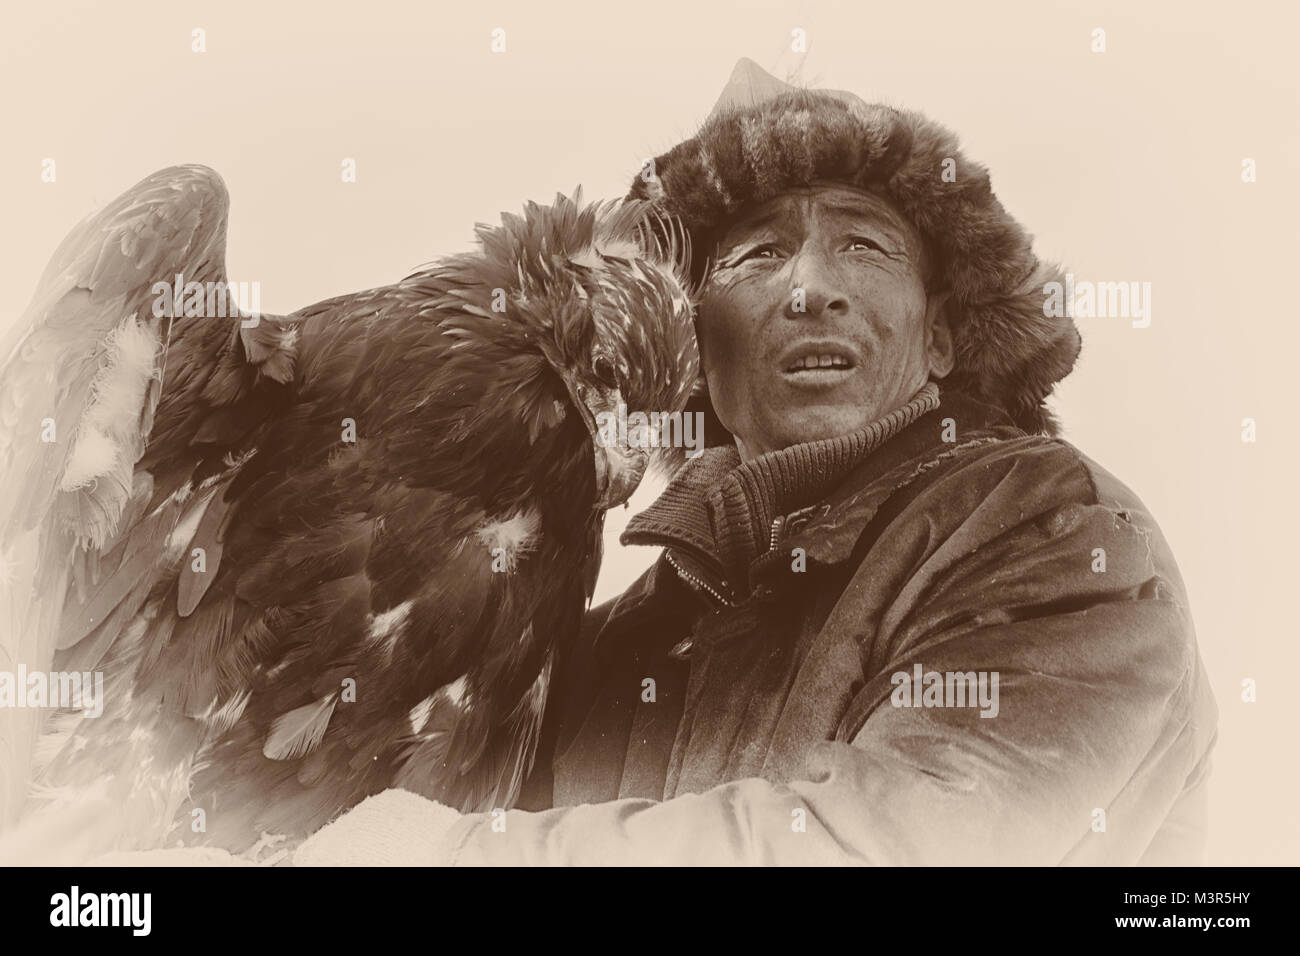 Golden eagle festival eagles and hunters huntress sepia series collection b&w portraits Ulgii Kazakh traditional Stock Photo